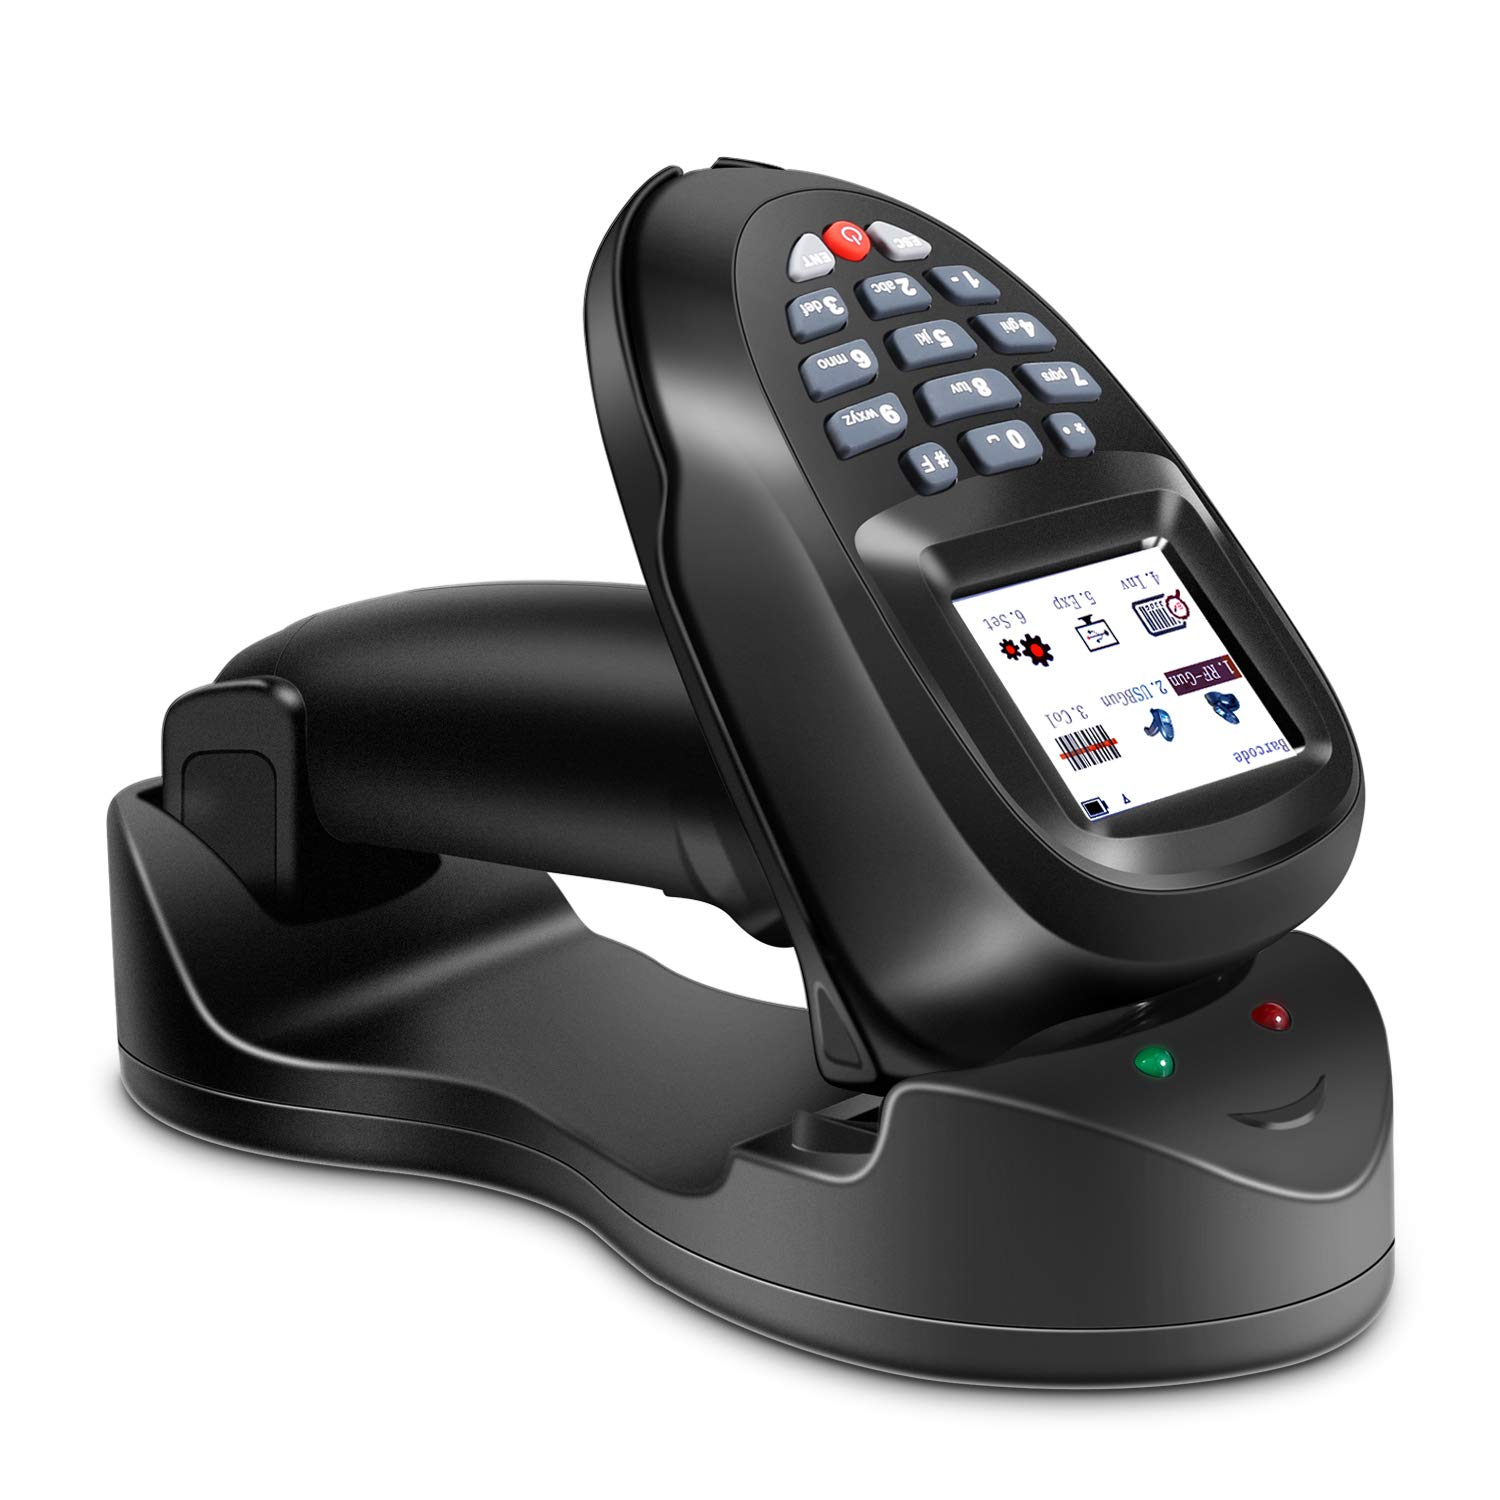 TroheStar Barcode Scanner Wireless and Collector Portable Data Terminal Inventory Device Bar Code Reader PDT with TFT Color LCD Screen & USB Cradle Receiver Charging Base